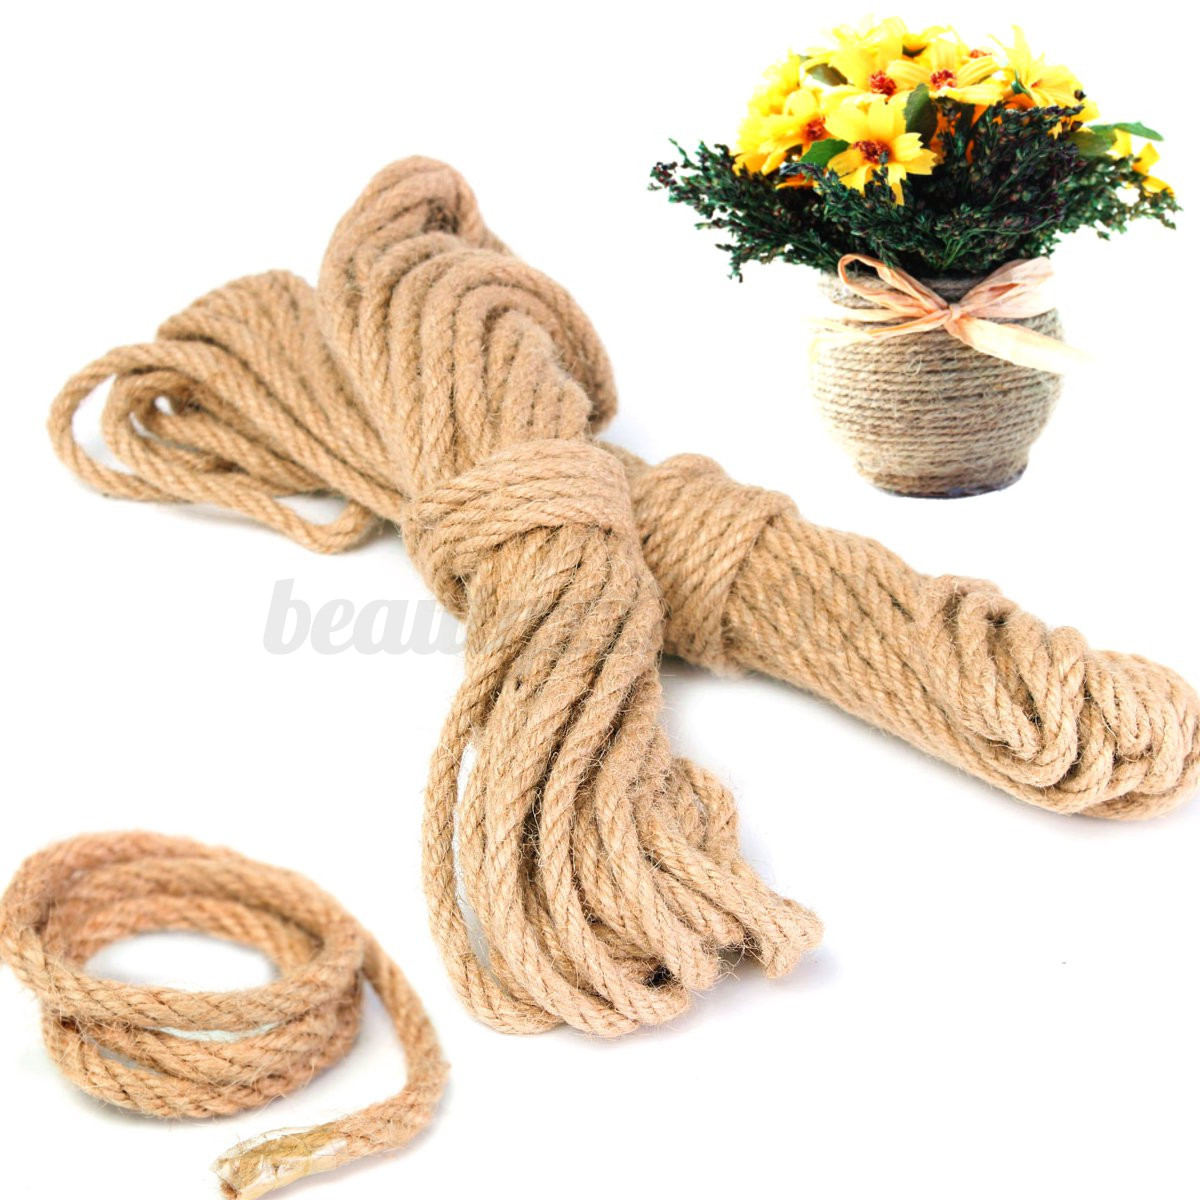 2pcs 10m long jute twine natural hemp bound string rope thick 6mm diy home decor ebay Home decoration with jute